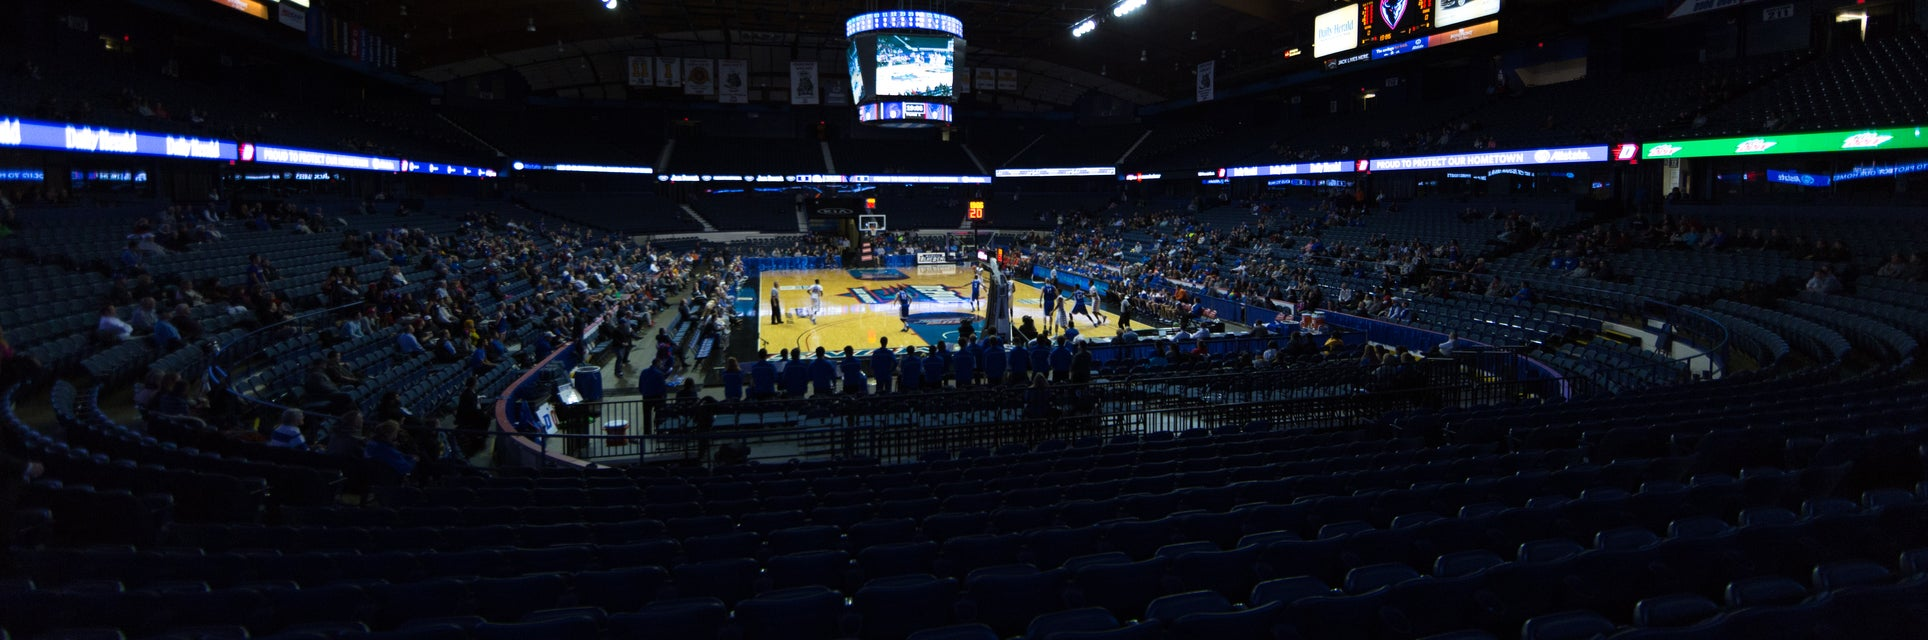 Seat view from Student